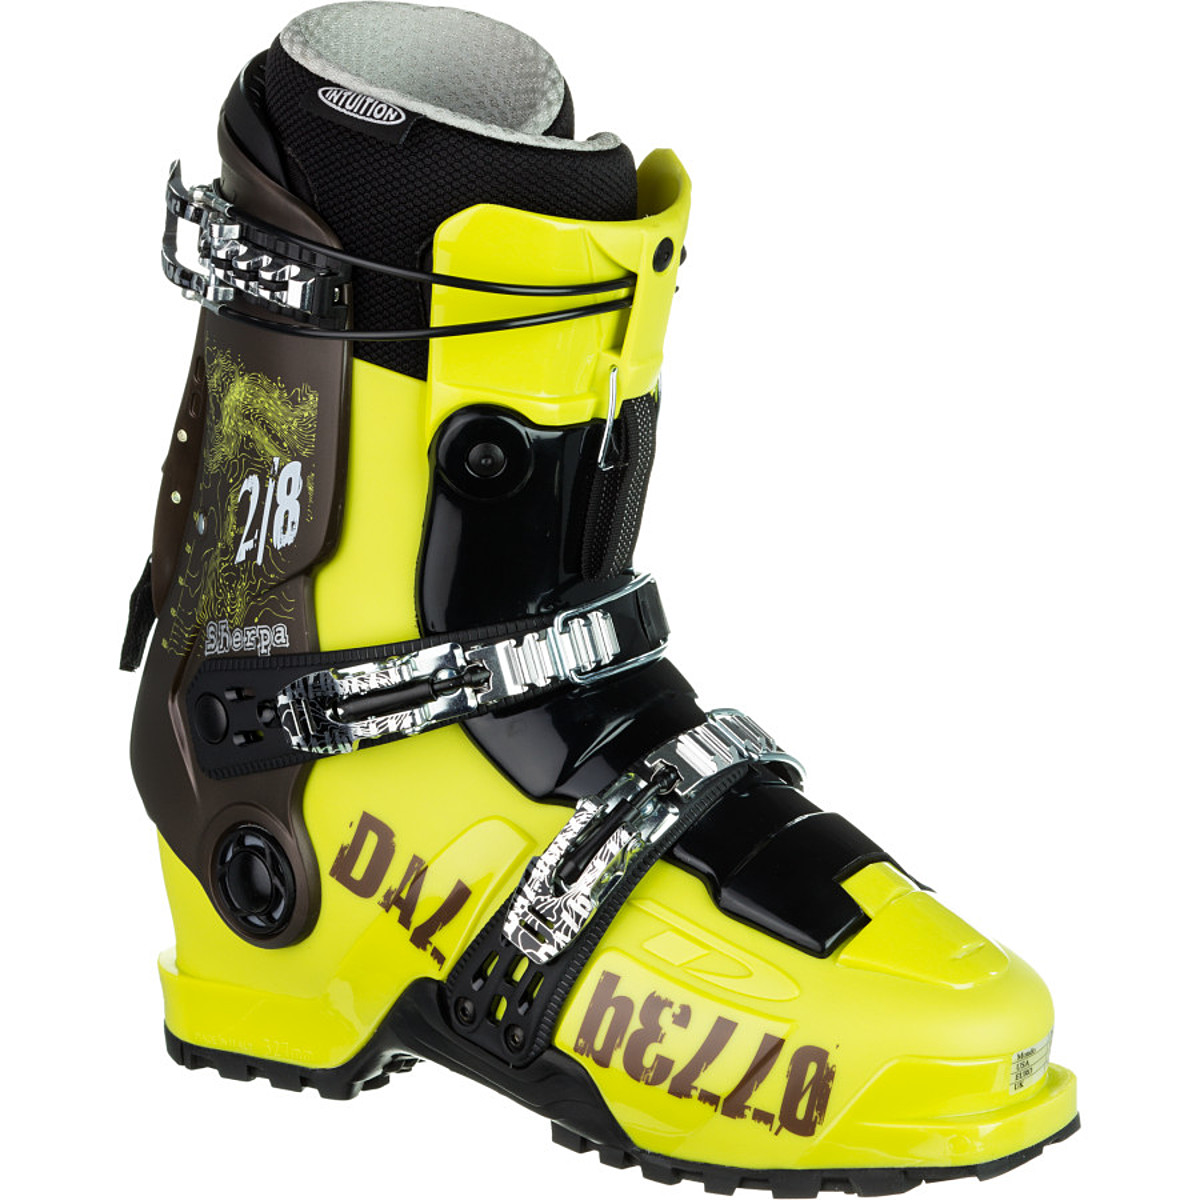 photo of a Dalbello alpine touring boot